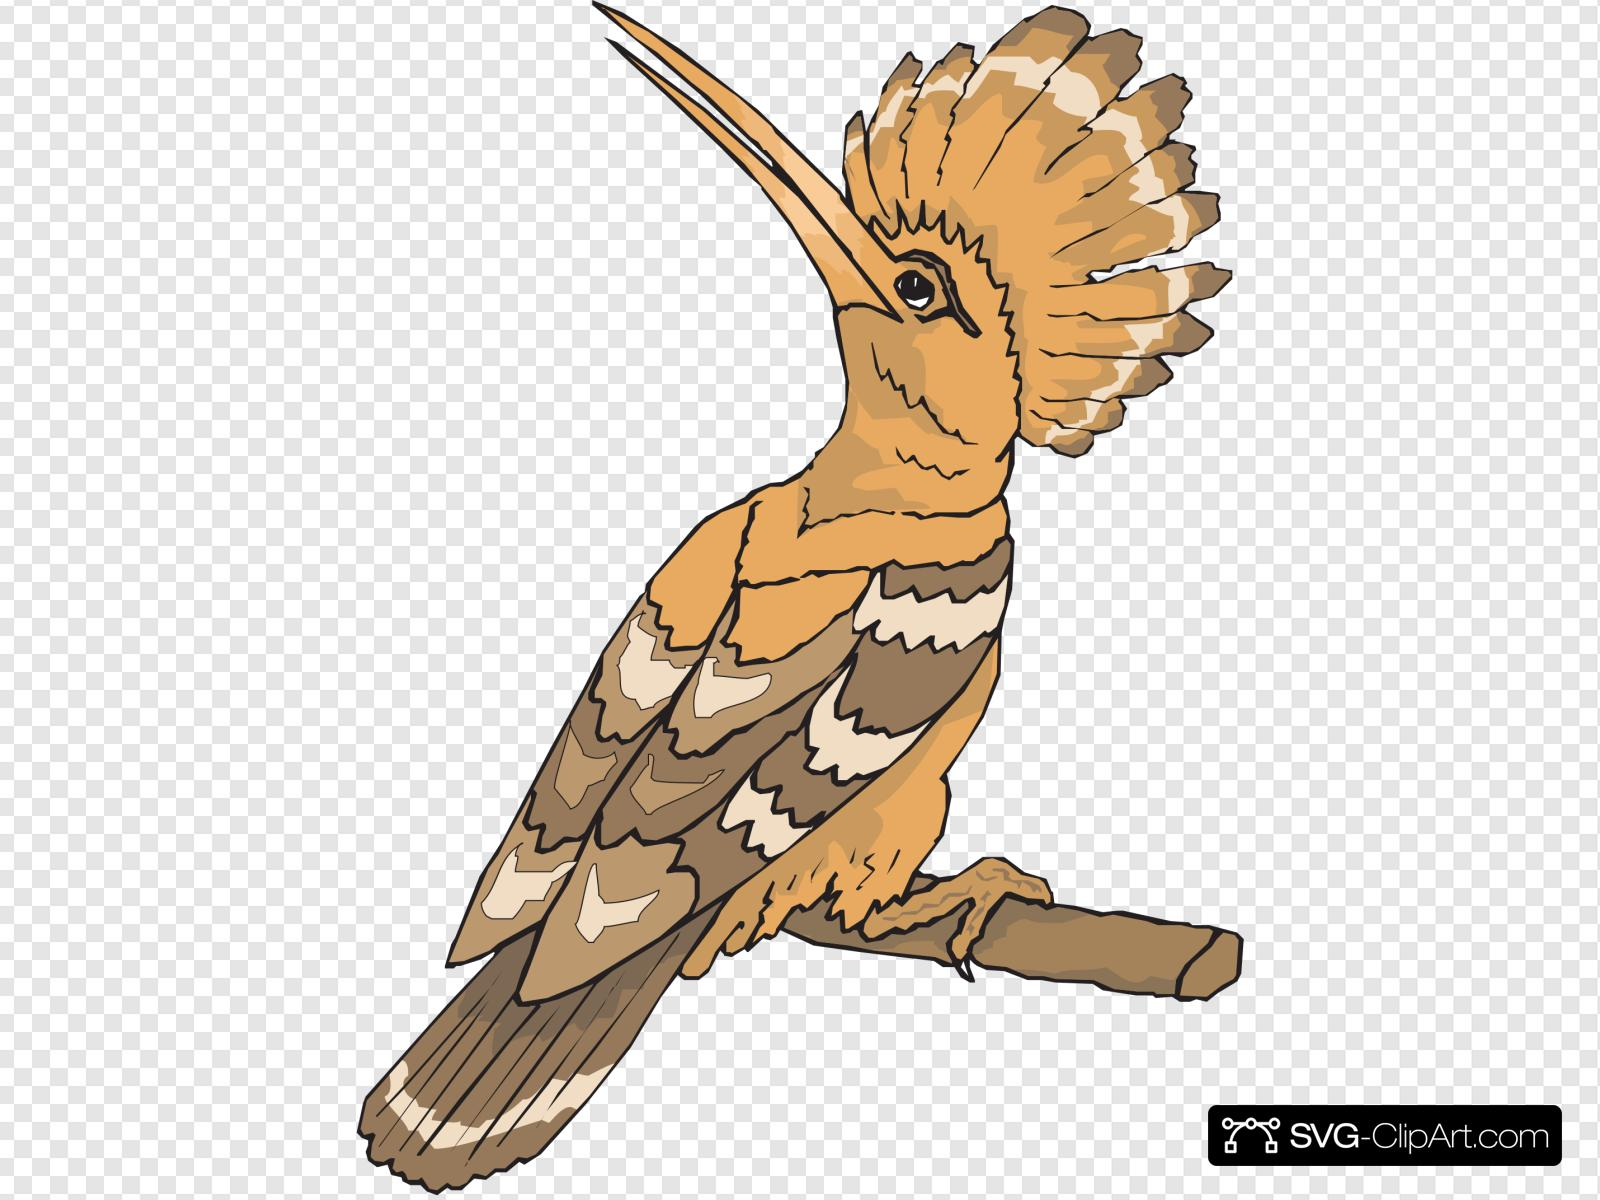 Looking back clipart clip art freeuse stock Perched Hoopoe Looking Back Clip art, Icon and SVG - SVG Clipart clip art freeuse stock